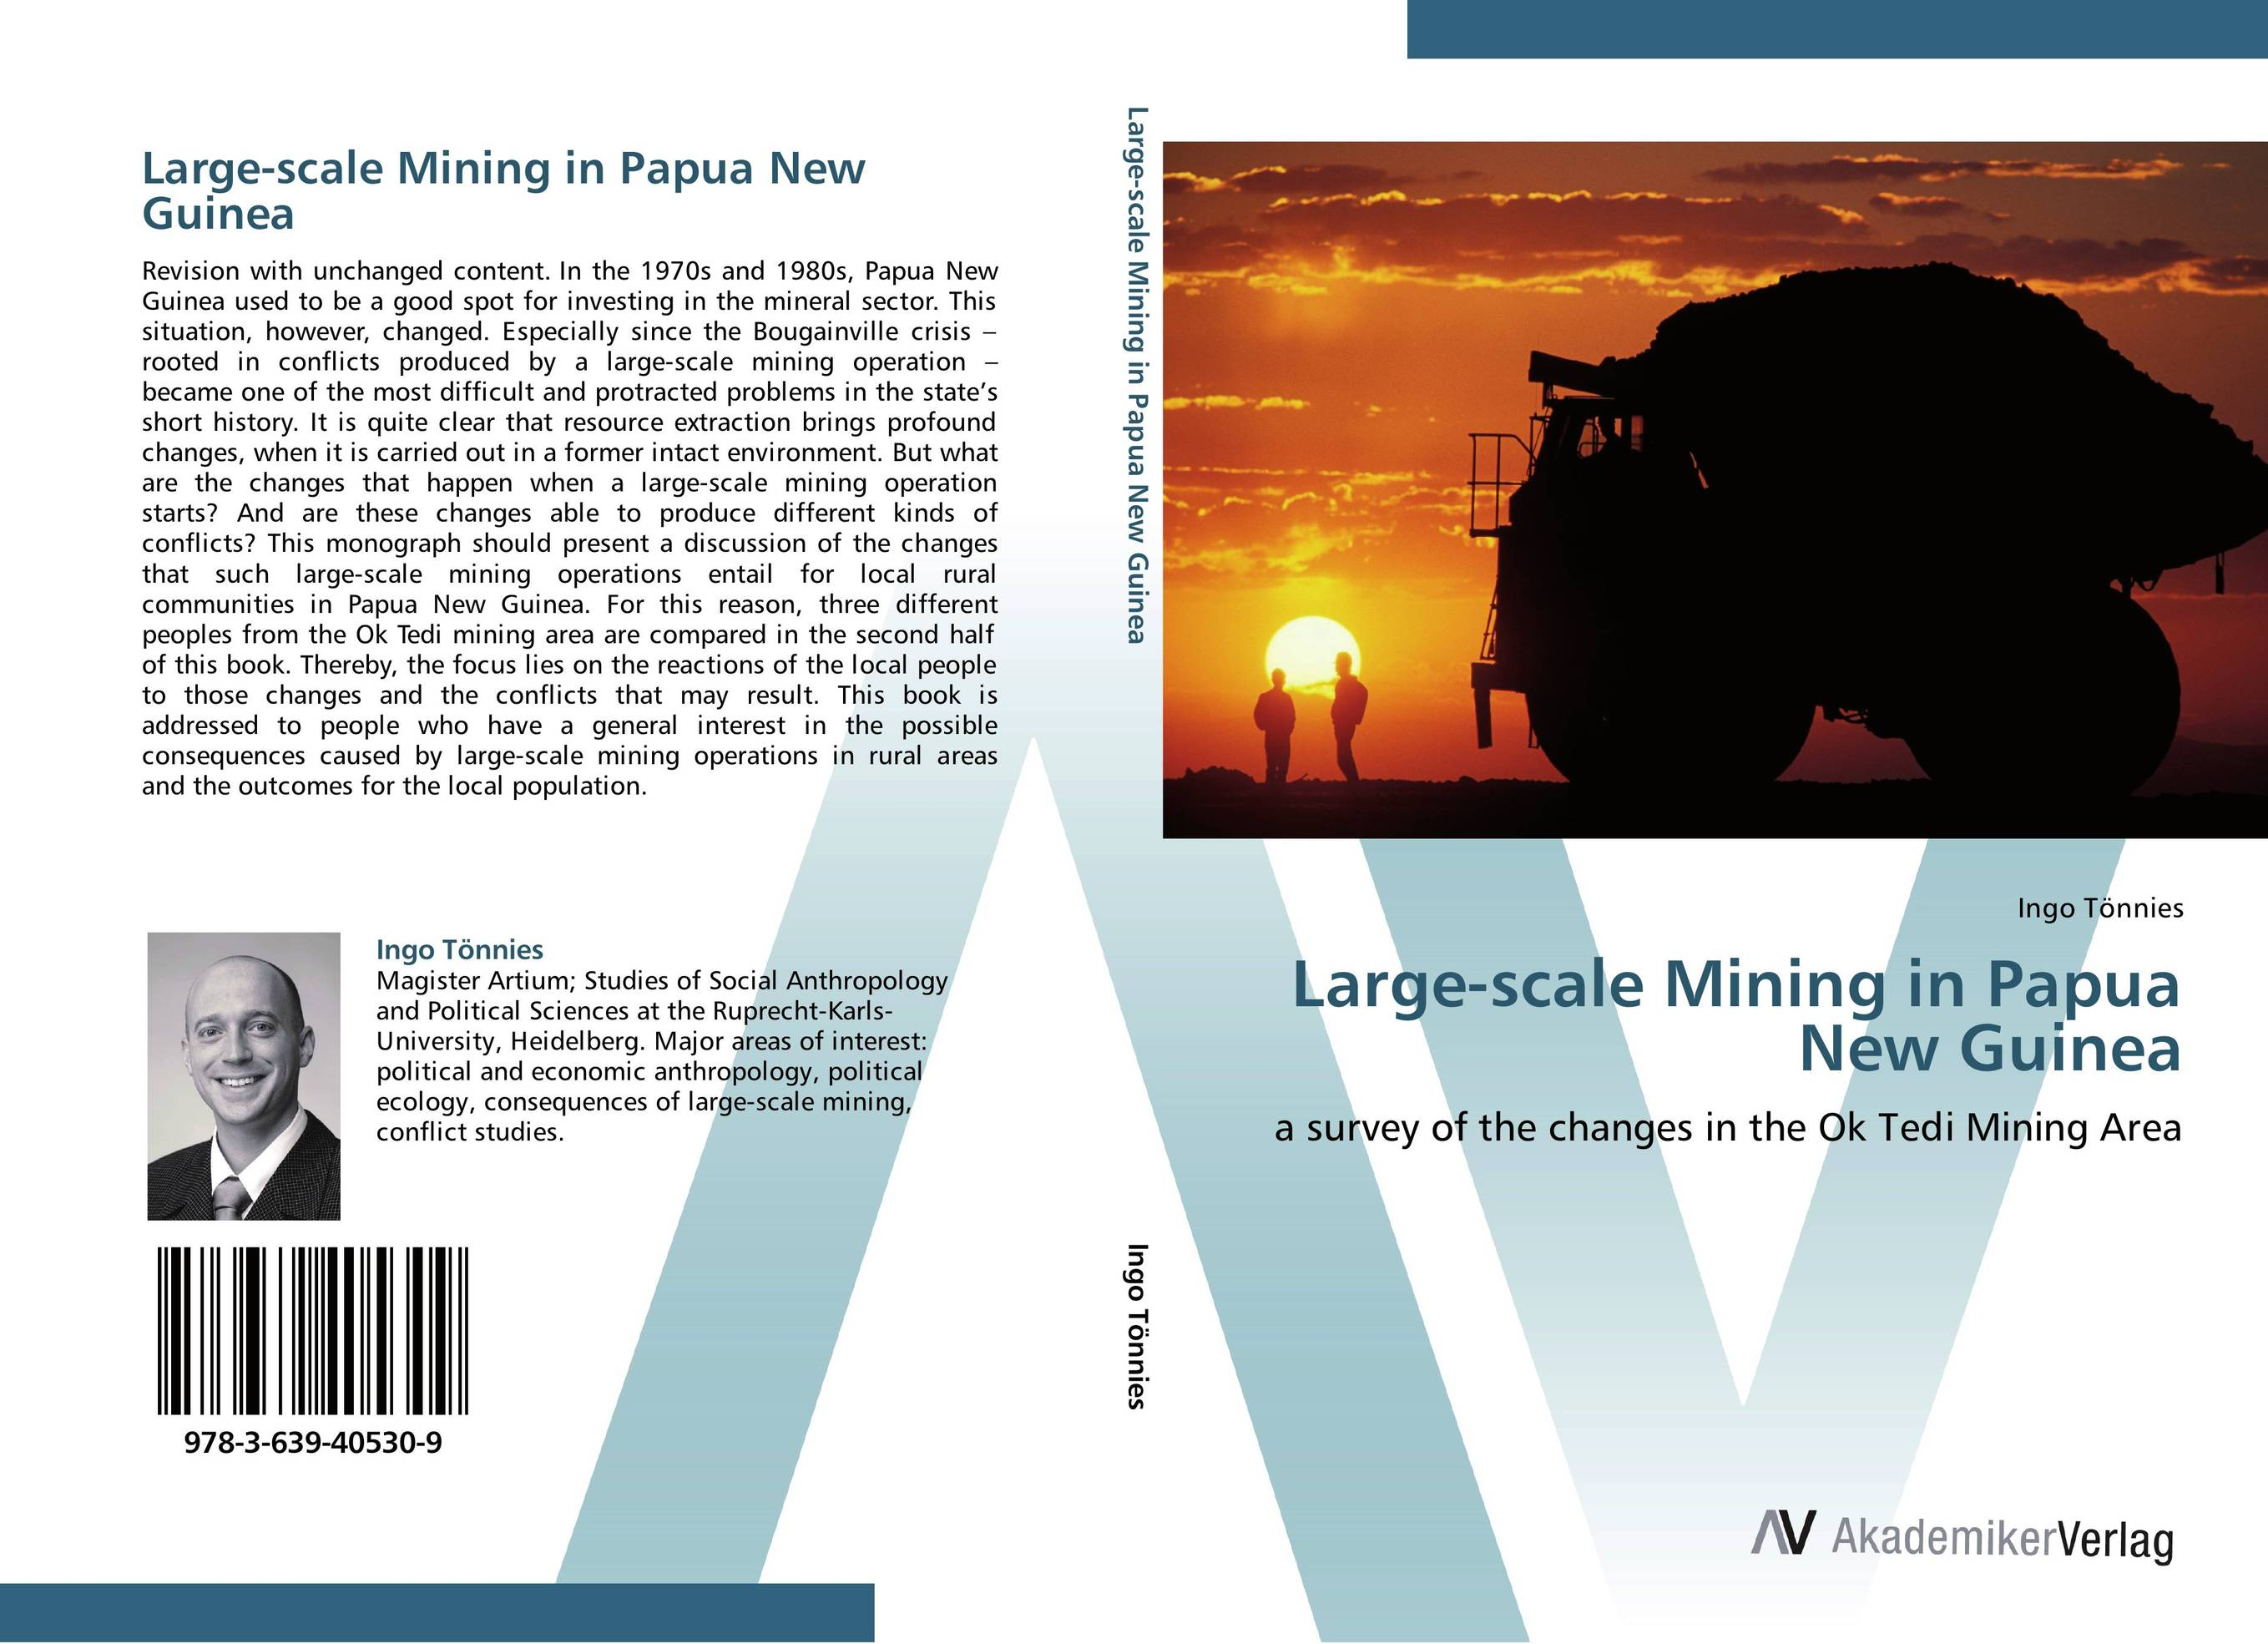 Large-scale Mining in Papua New Guinea